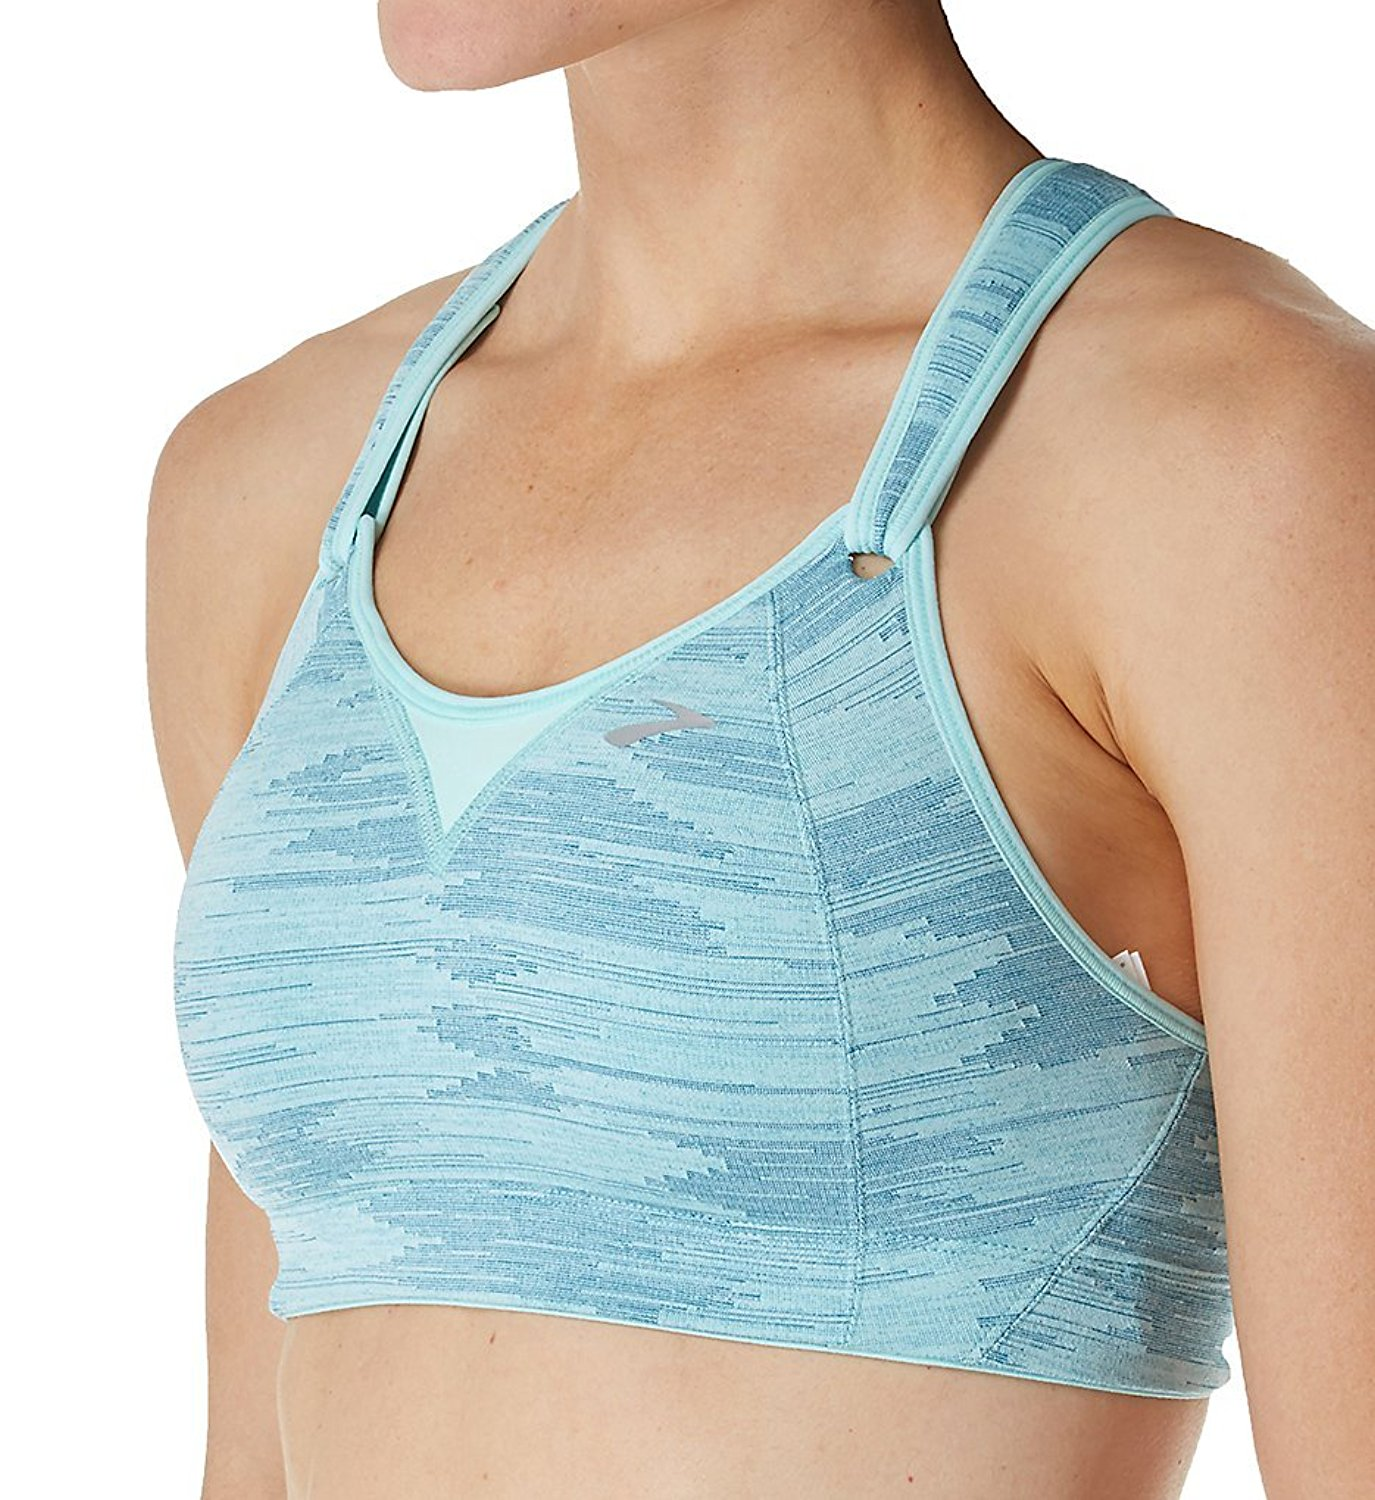 21495a16ce2b6 Get Quotations · Brooks Moving Comfort Rebound Racer High Impact Sports Bra  (350037) 30C Pool Ikat